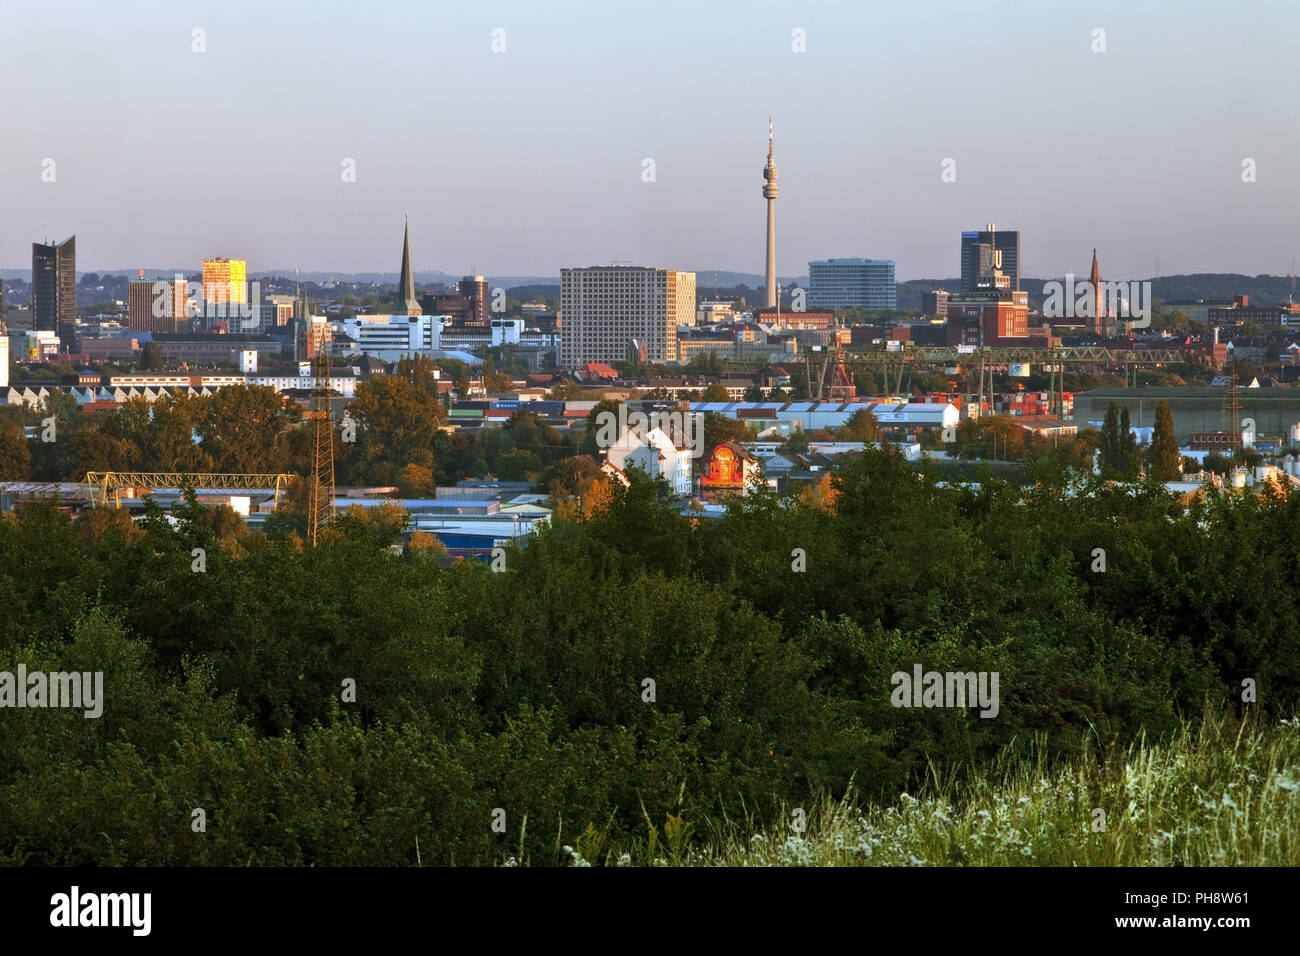 panorama of the city with Florian Tower, Dortmund - Stock Image